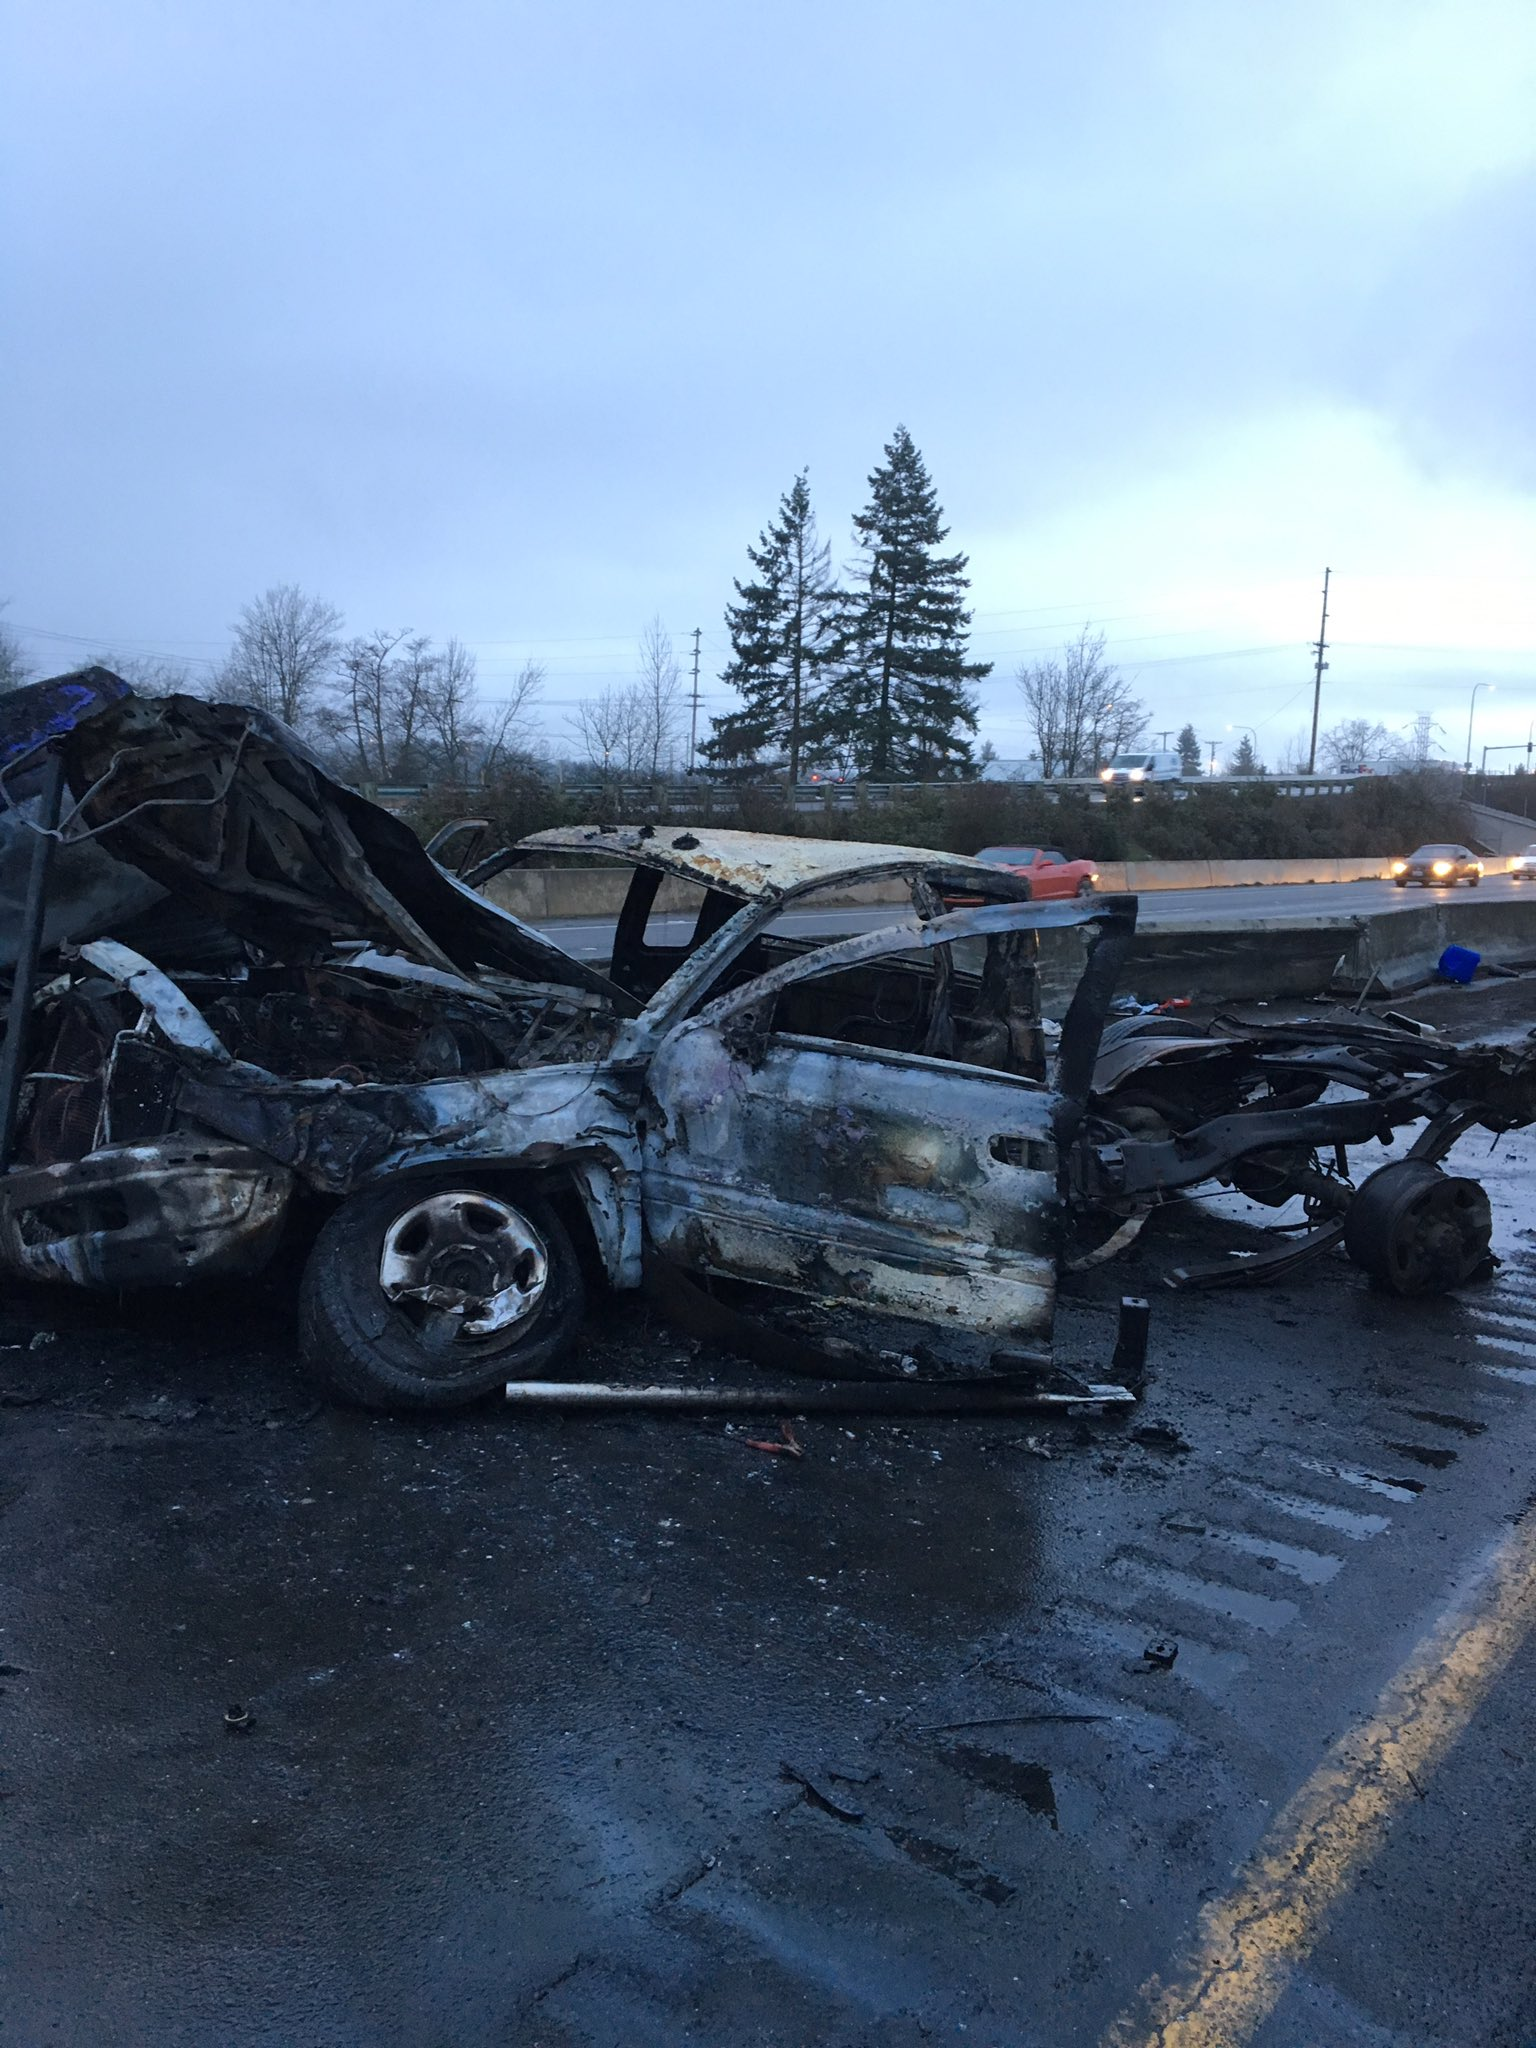 One person was seriously injured and airlifted in a crash on I-5 south near Chehalis on Feb. 6, 2018. Photo courtesy Trooper Will Finn